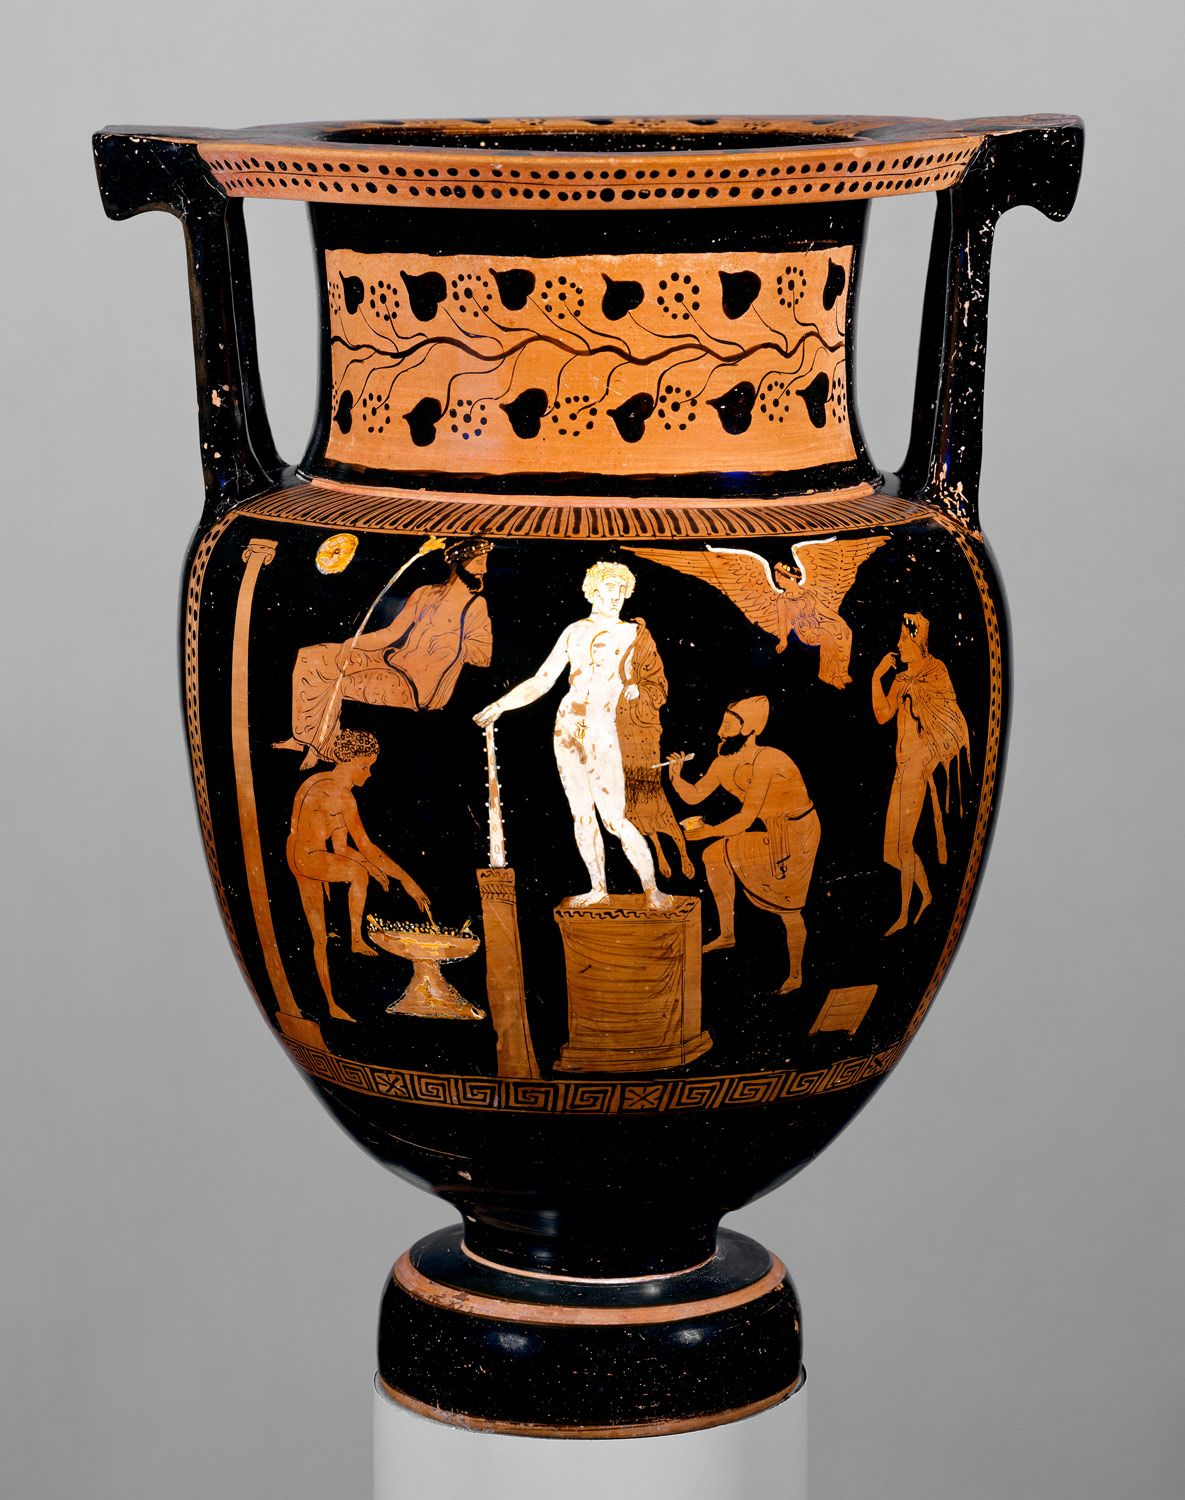 Terracotta column krater bowl for mixing wine and water terracotta column krater bowl for mixing wine and water attributed to the group reviewsmspy